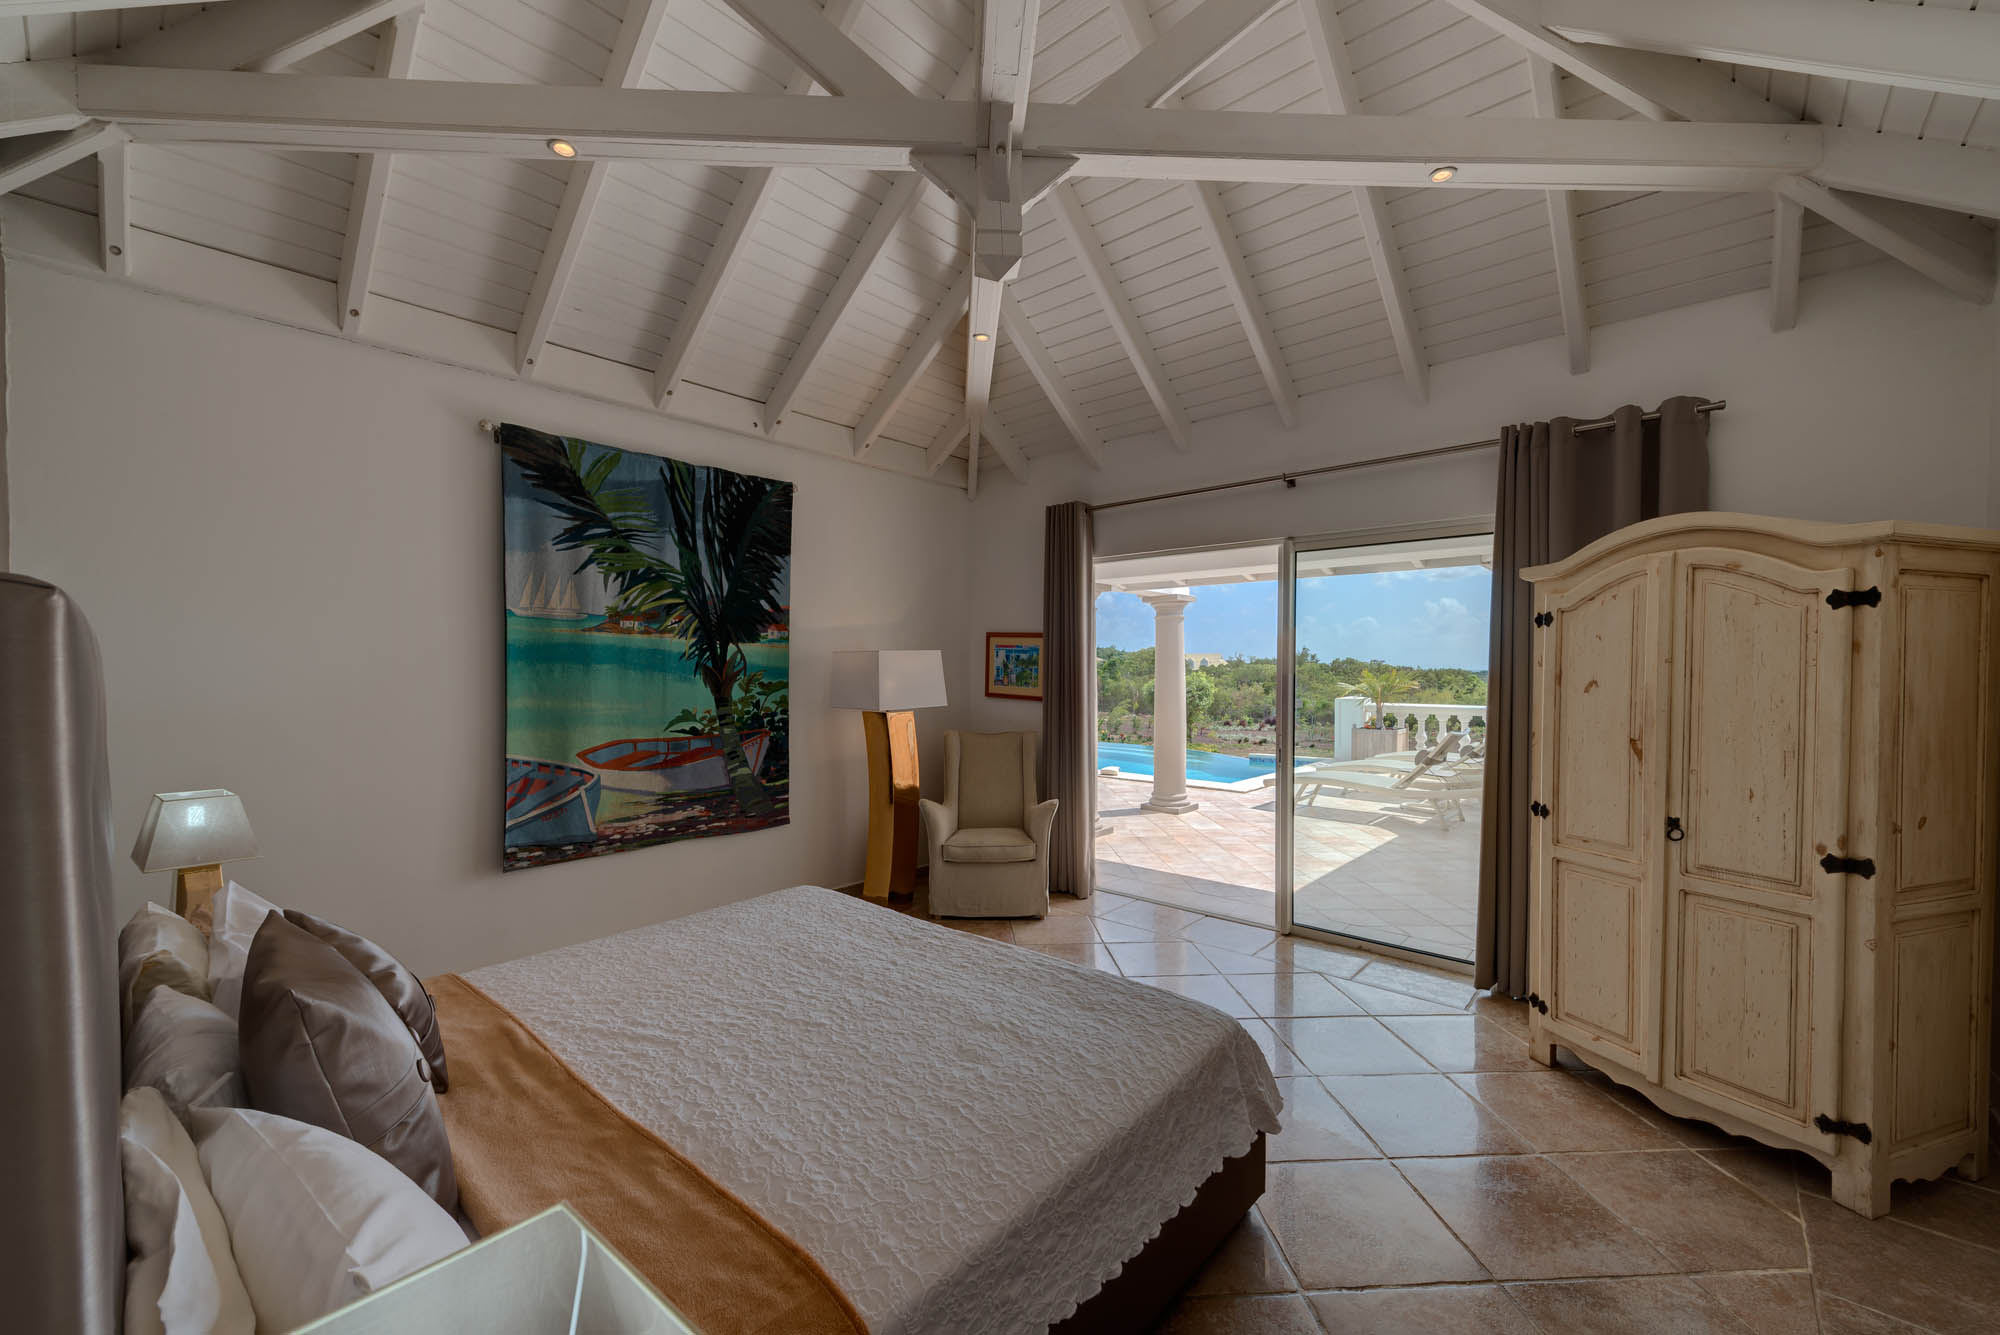 Feel the smoothing breeze from the ocean at this Saint Martin villa rental.